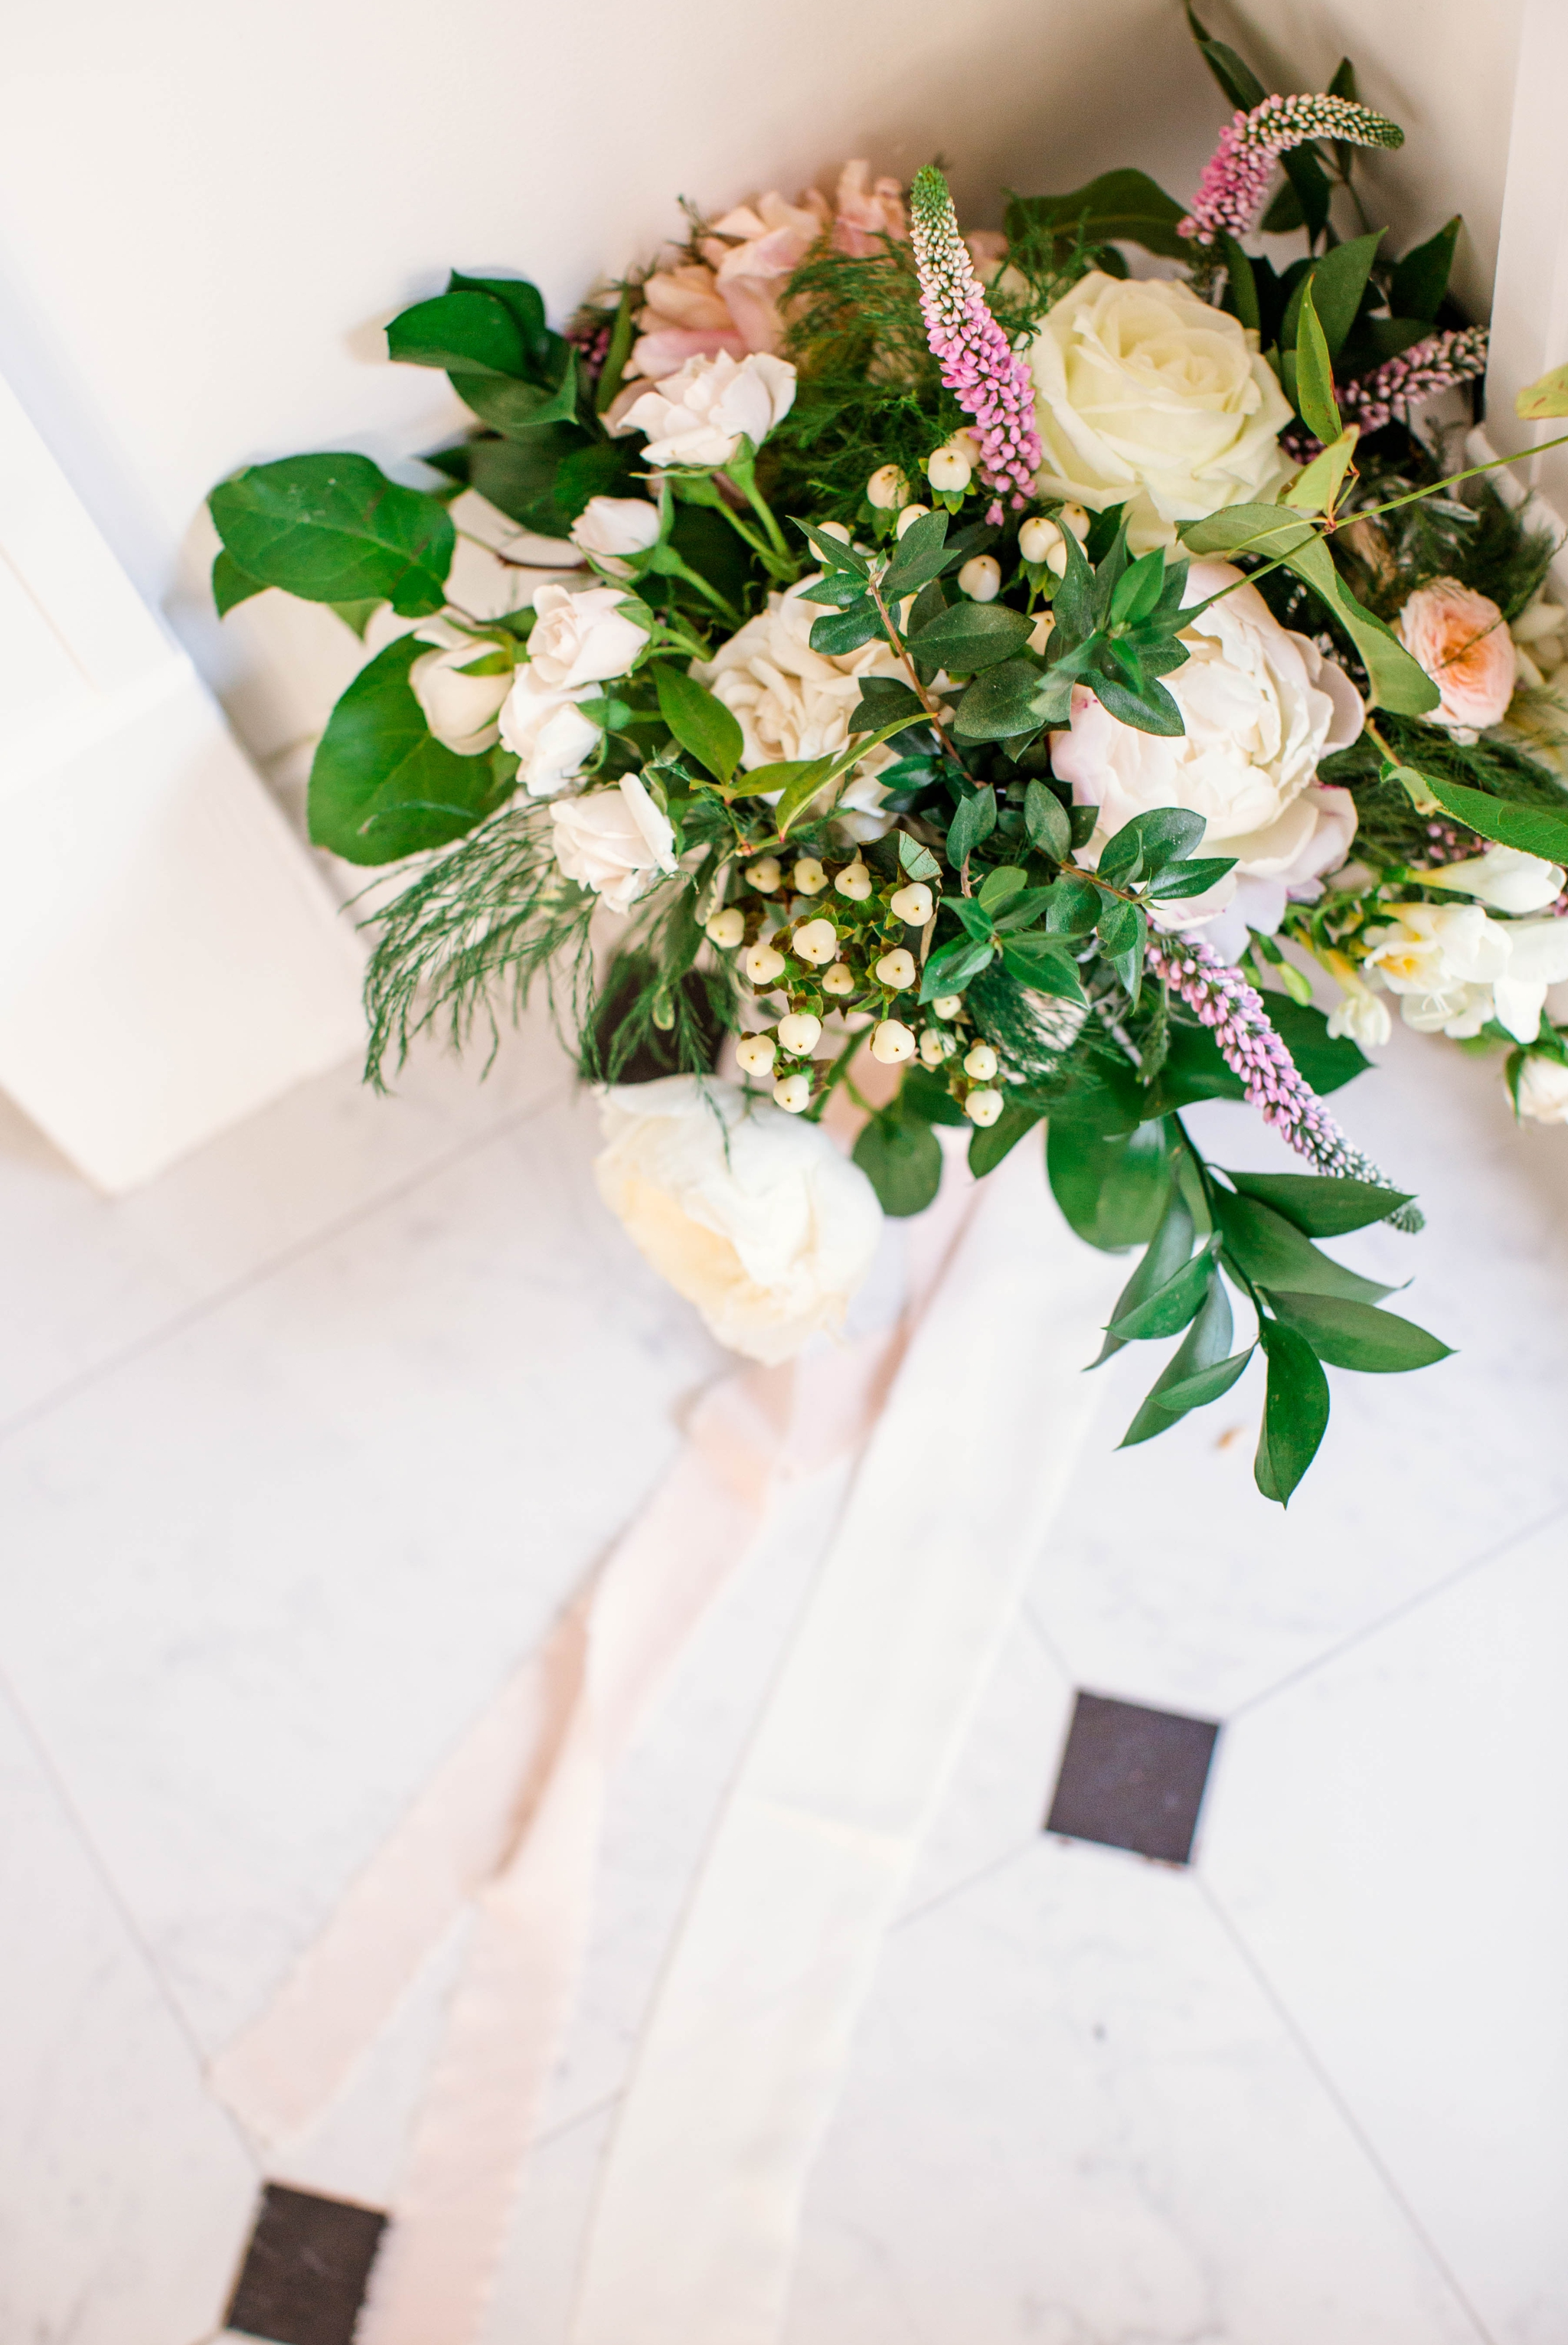 Bridal Bouquet with greenery and white flowers and paste tones on a black and white marble floor - Fine Art Wedding Photographer in Honolulu, Oahu, Hawaii - edited with the for the love of film presets by jose villa